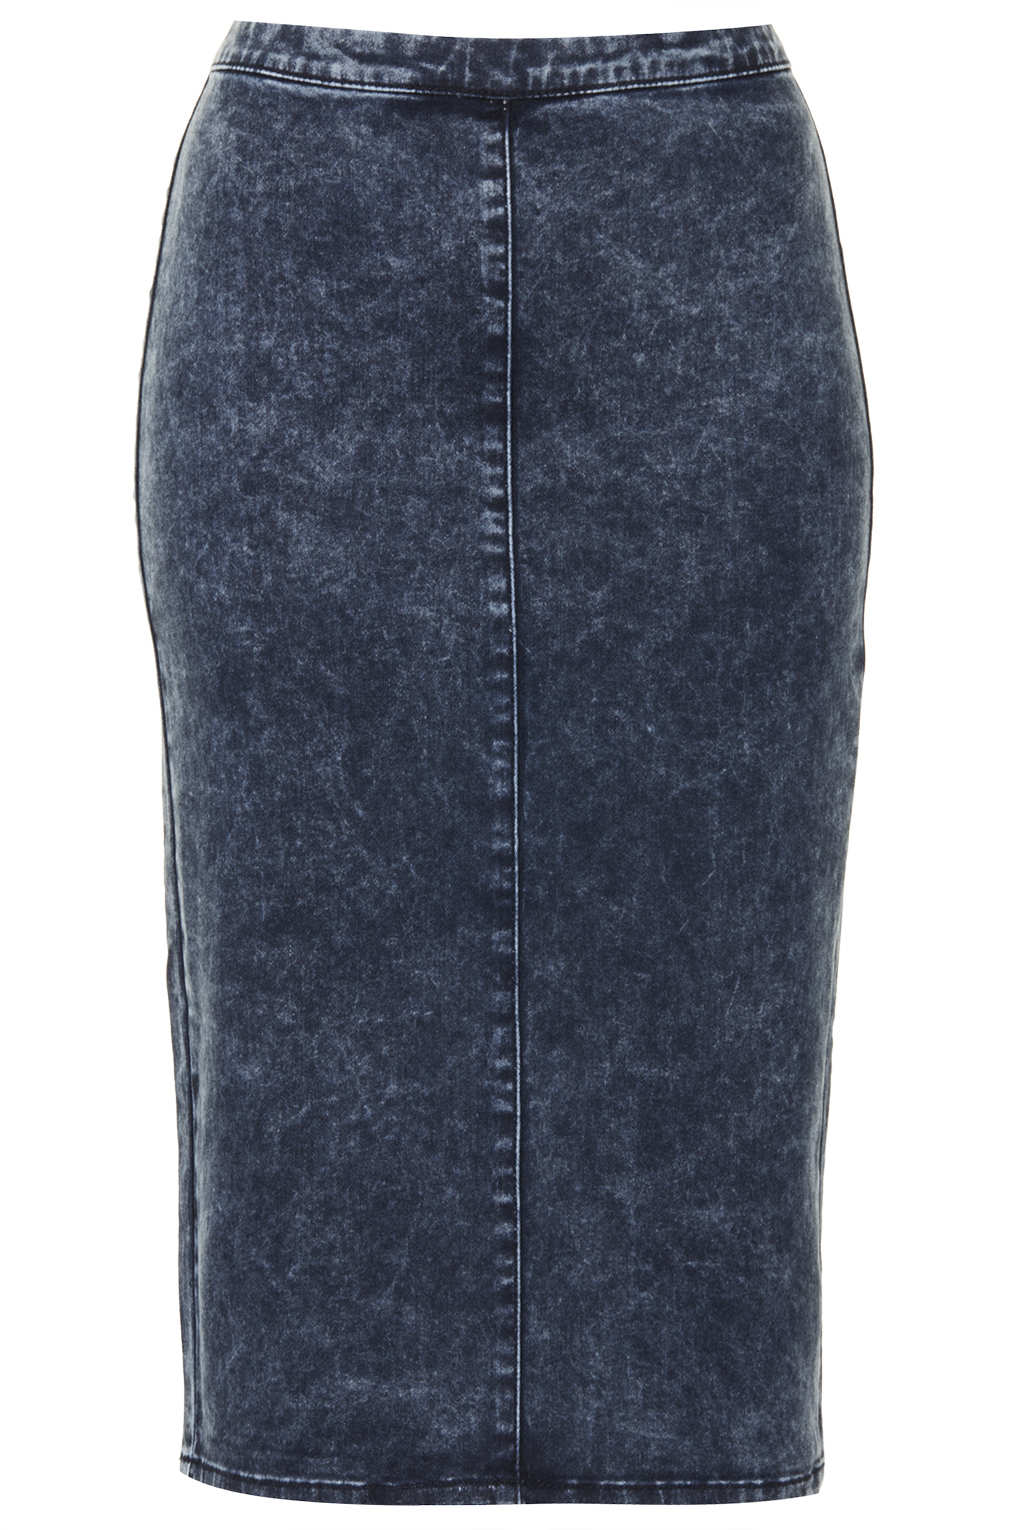 topshop moto vintage acid denim midi skirt in blue mid